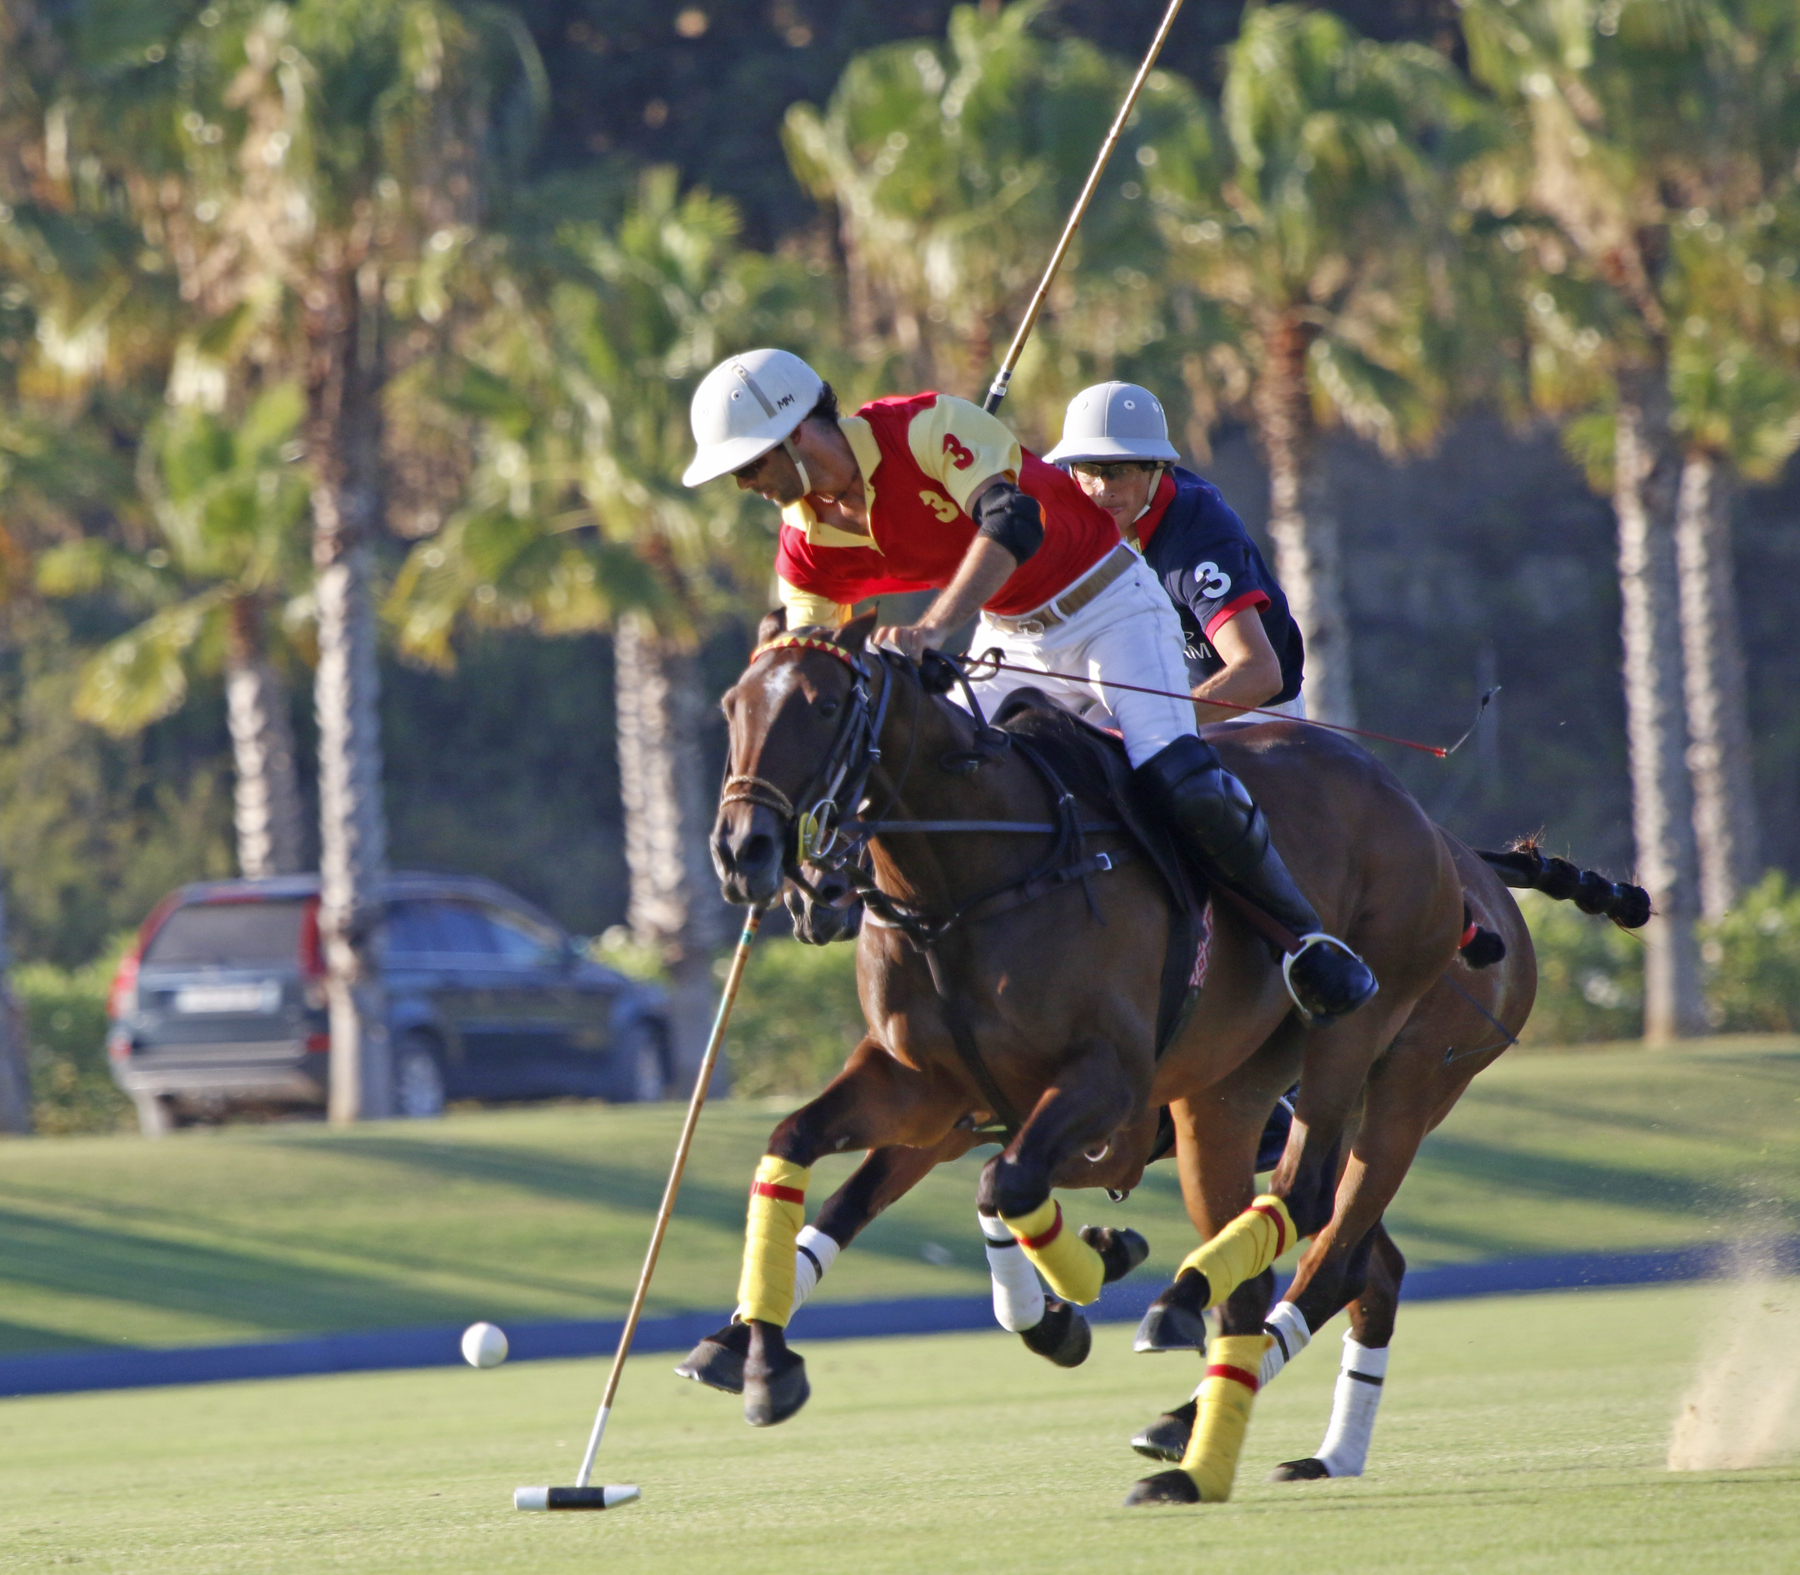 Polo in Sotogrande. © Santa Maria Polo Club